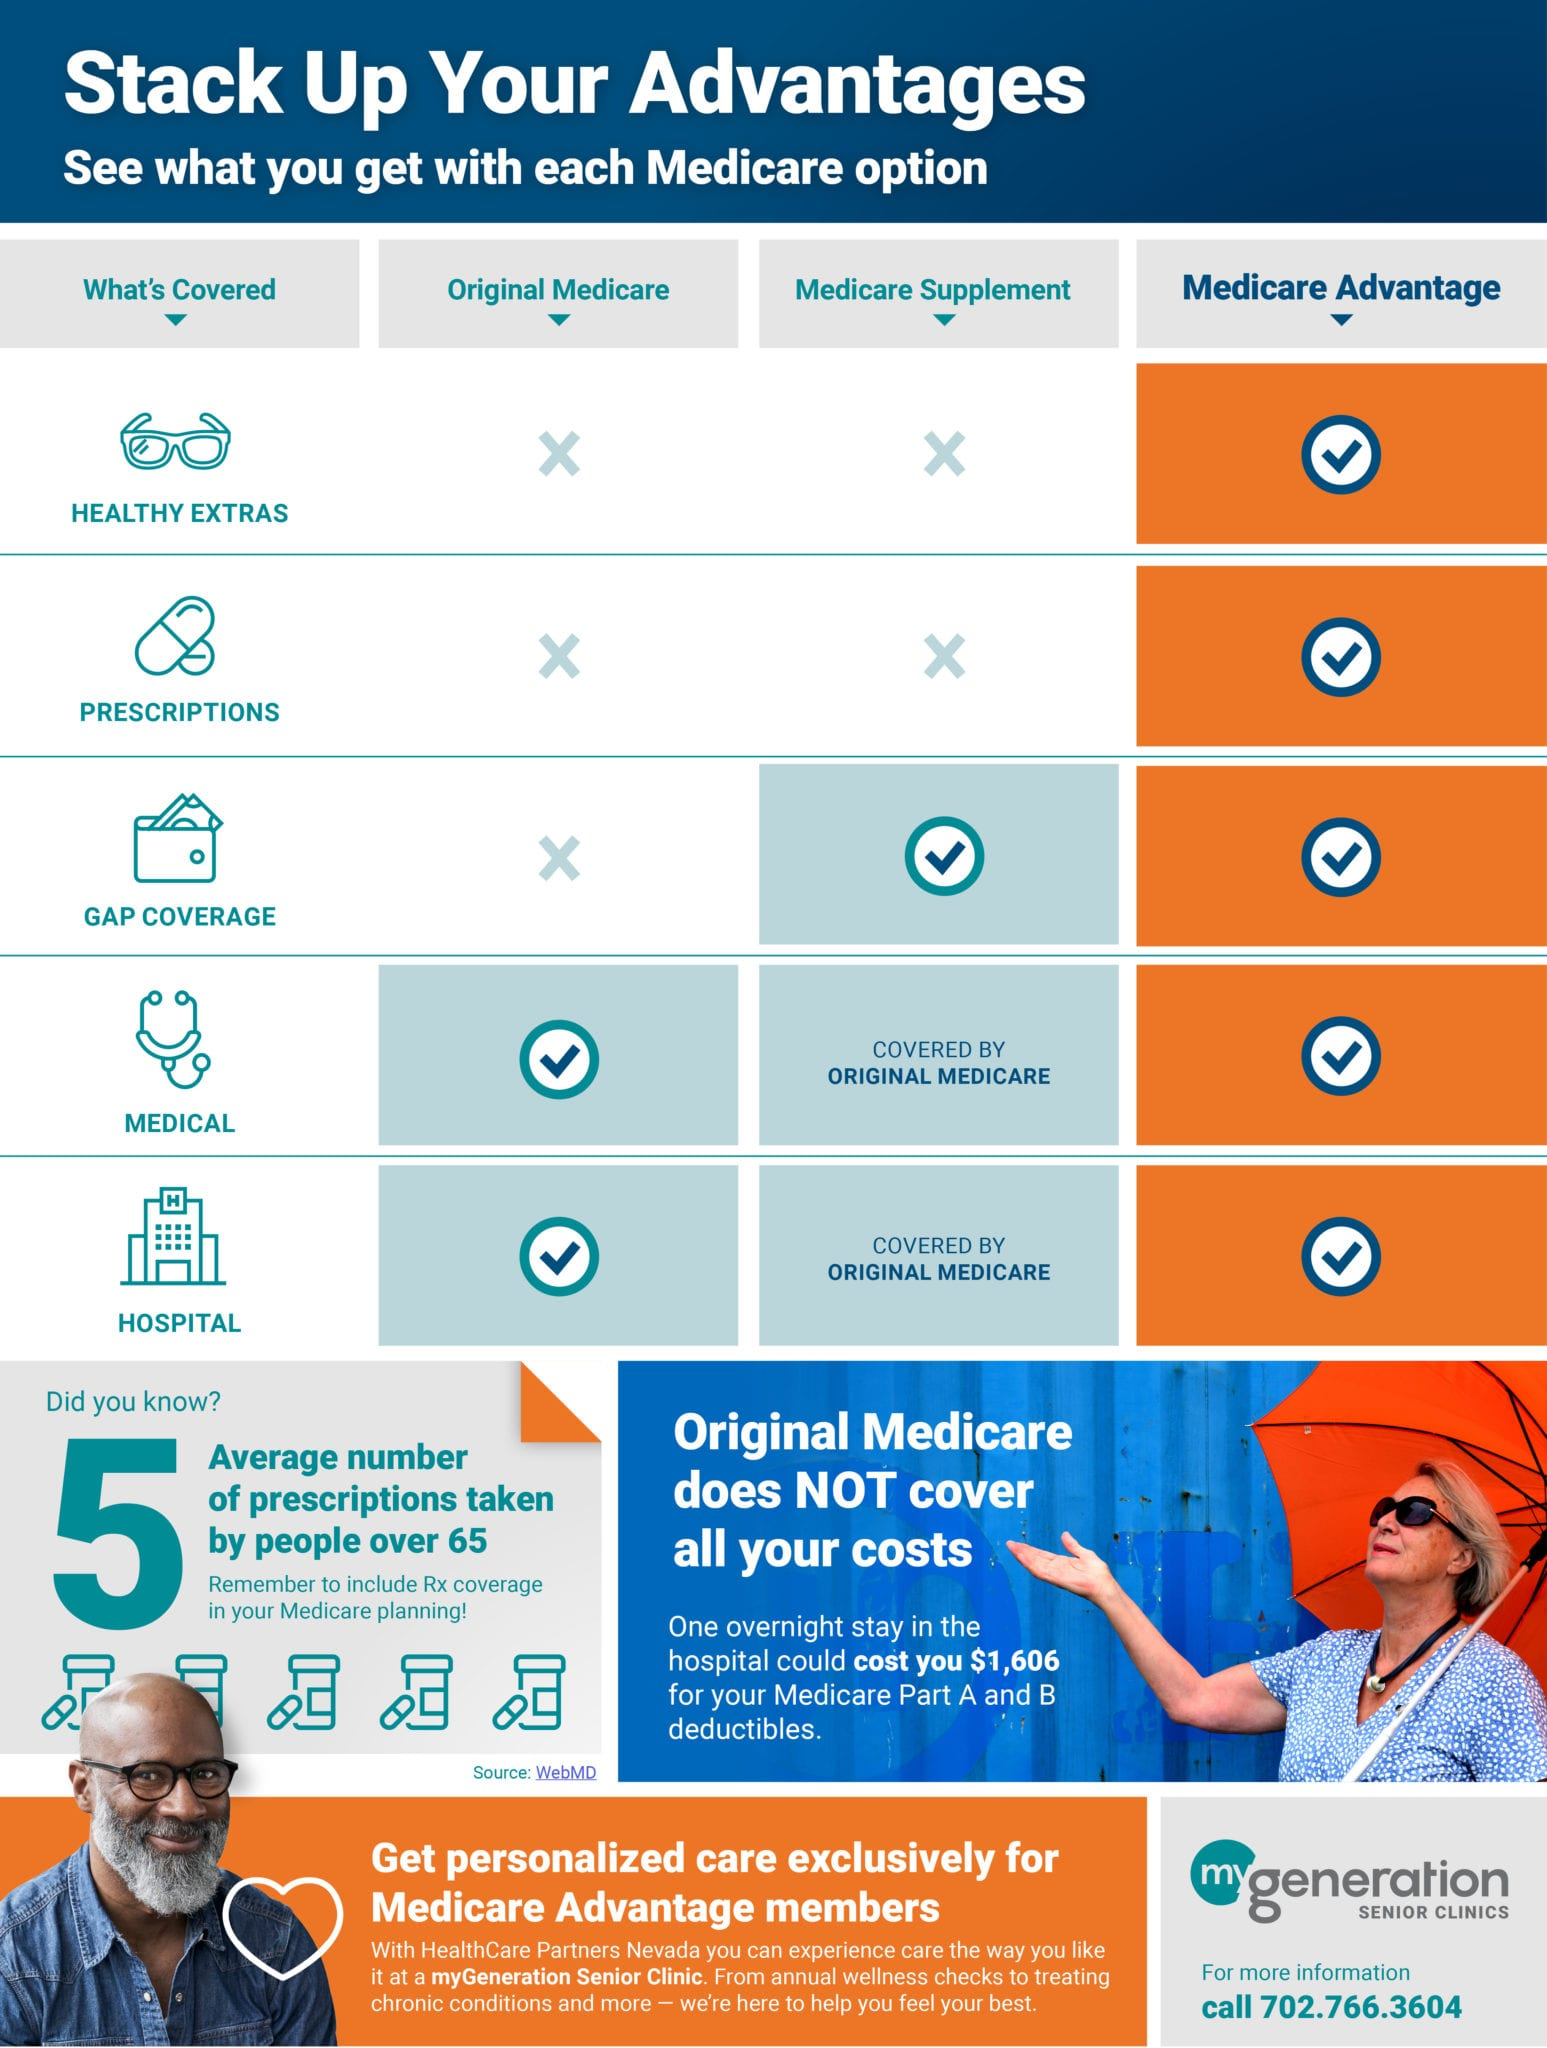 Infographic comparing Medicare supplements and Medicare Advantage benefits